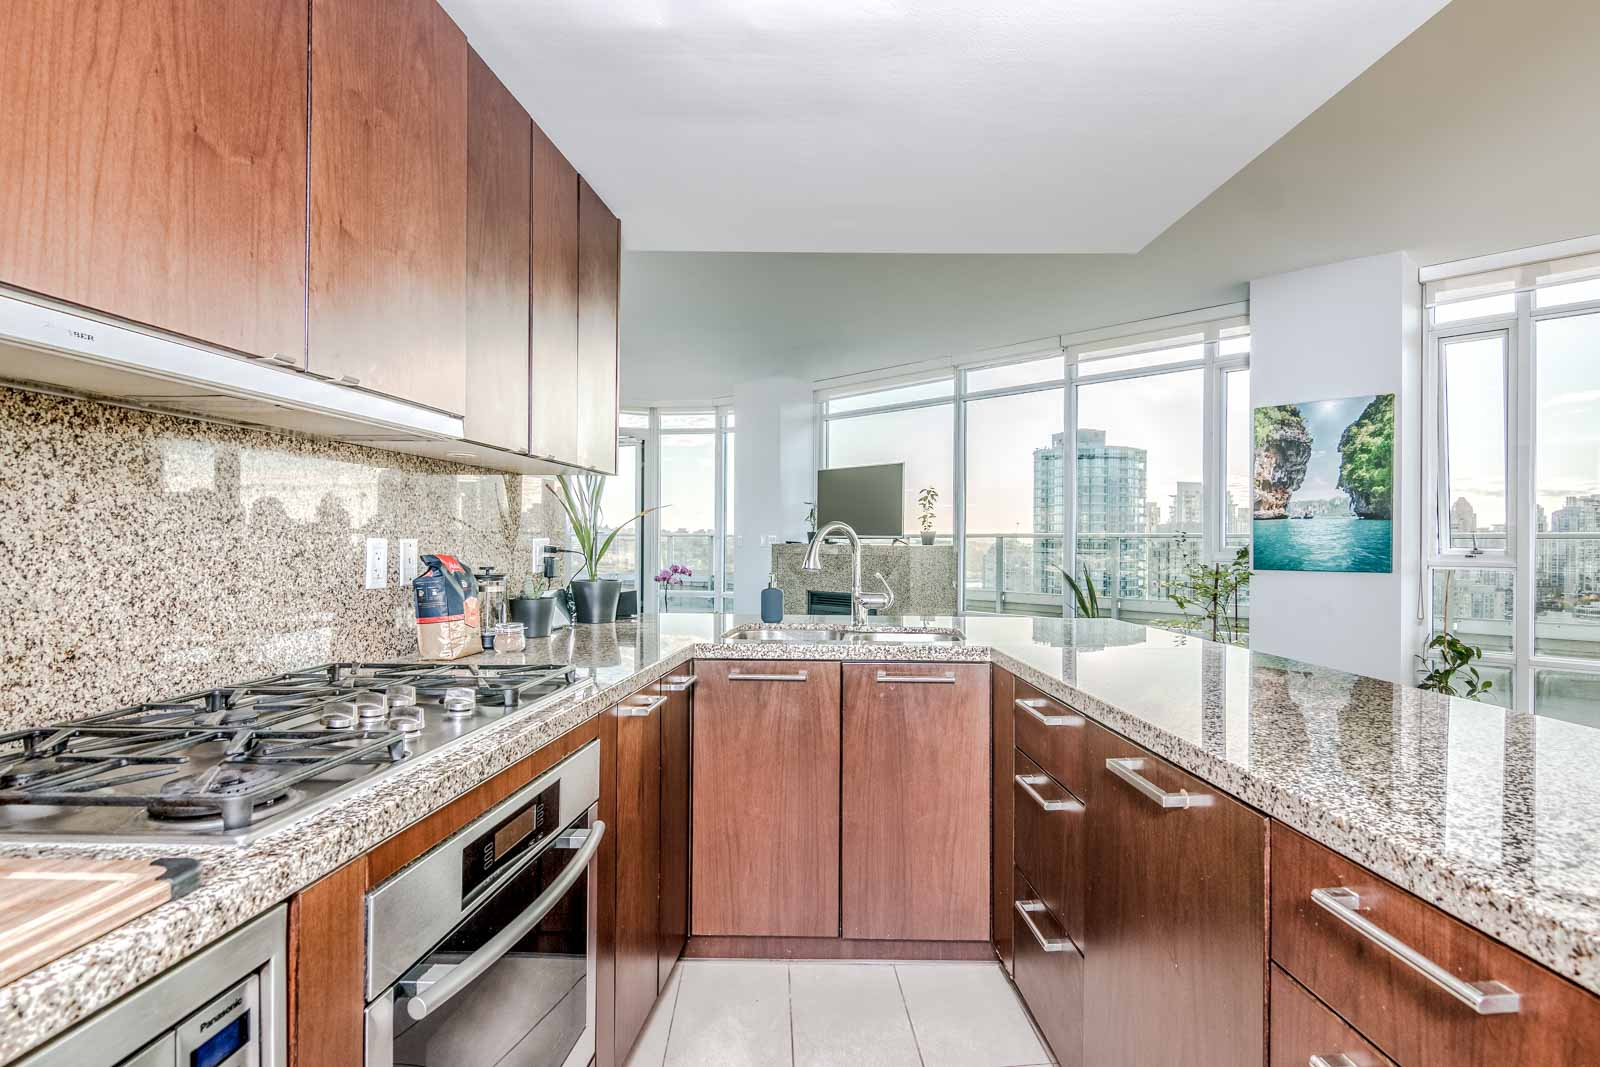 Bright Kitchen in Condo at 918 Cooperage Way Listed by Rental Property Management Company Birds Nest Properties